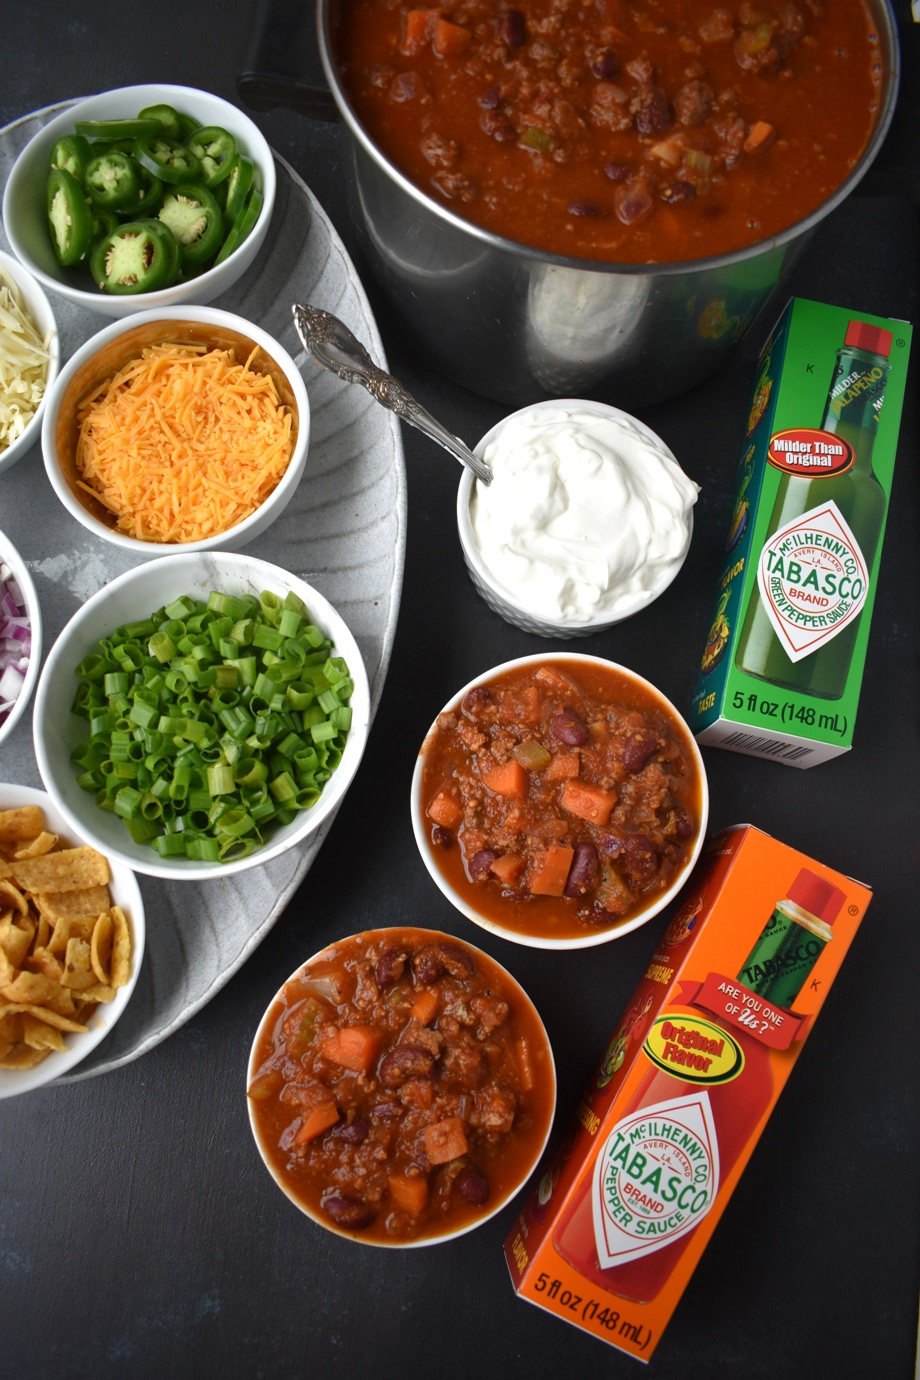 Make your own chili bar